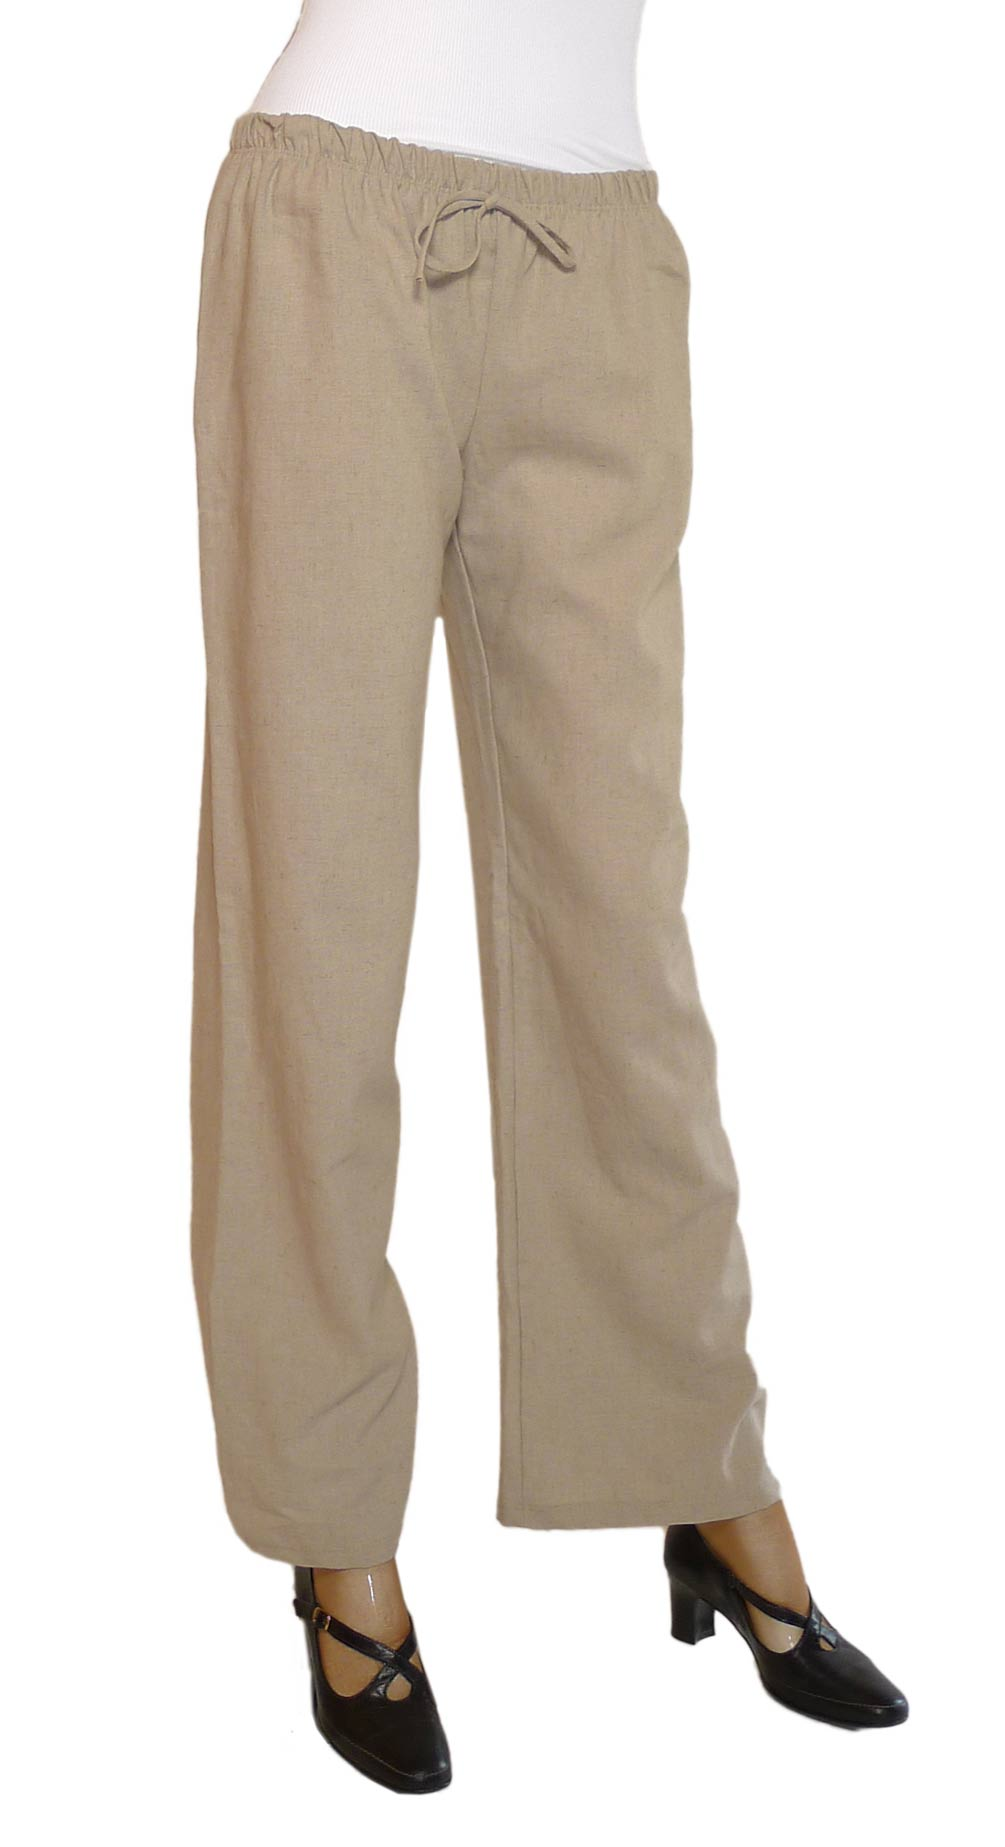 Cool The Womens Linen Wide Leg Pants By Merona Give Your Look A Little Retro Feel And A Lot Of Comfort The Neutral Womens Drawstring Waist Pants Give You The Versatility You Want For Styling Options The Legs On These Pants Are Way Too Wide